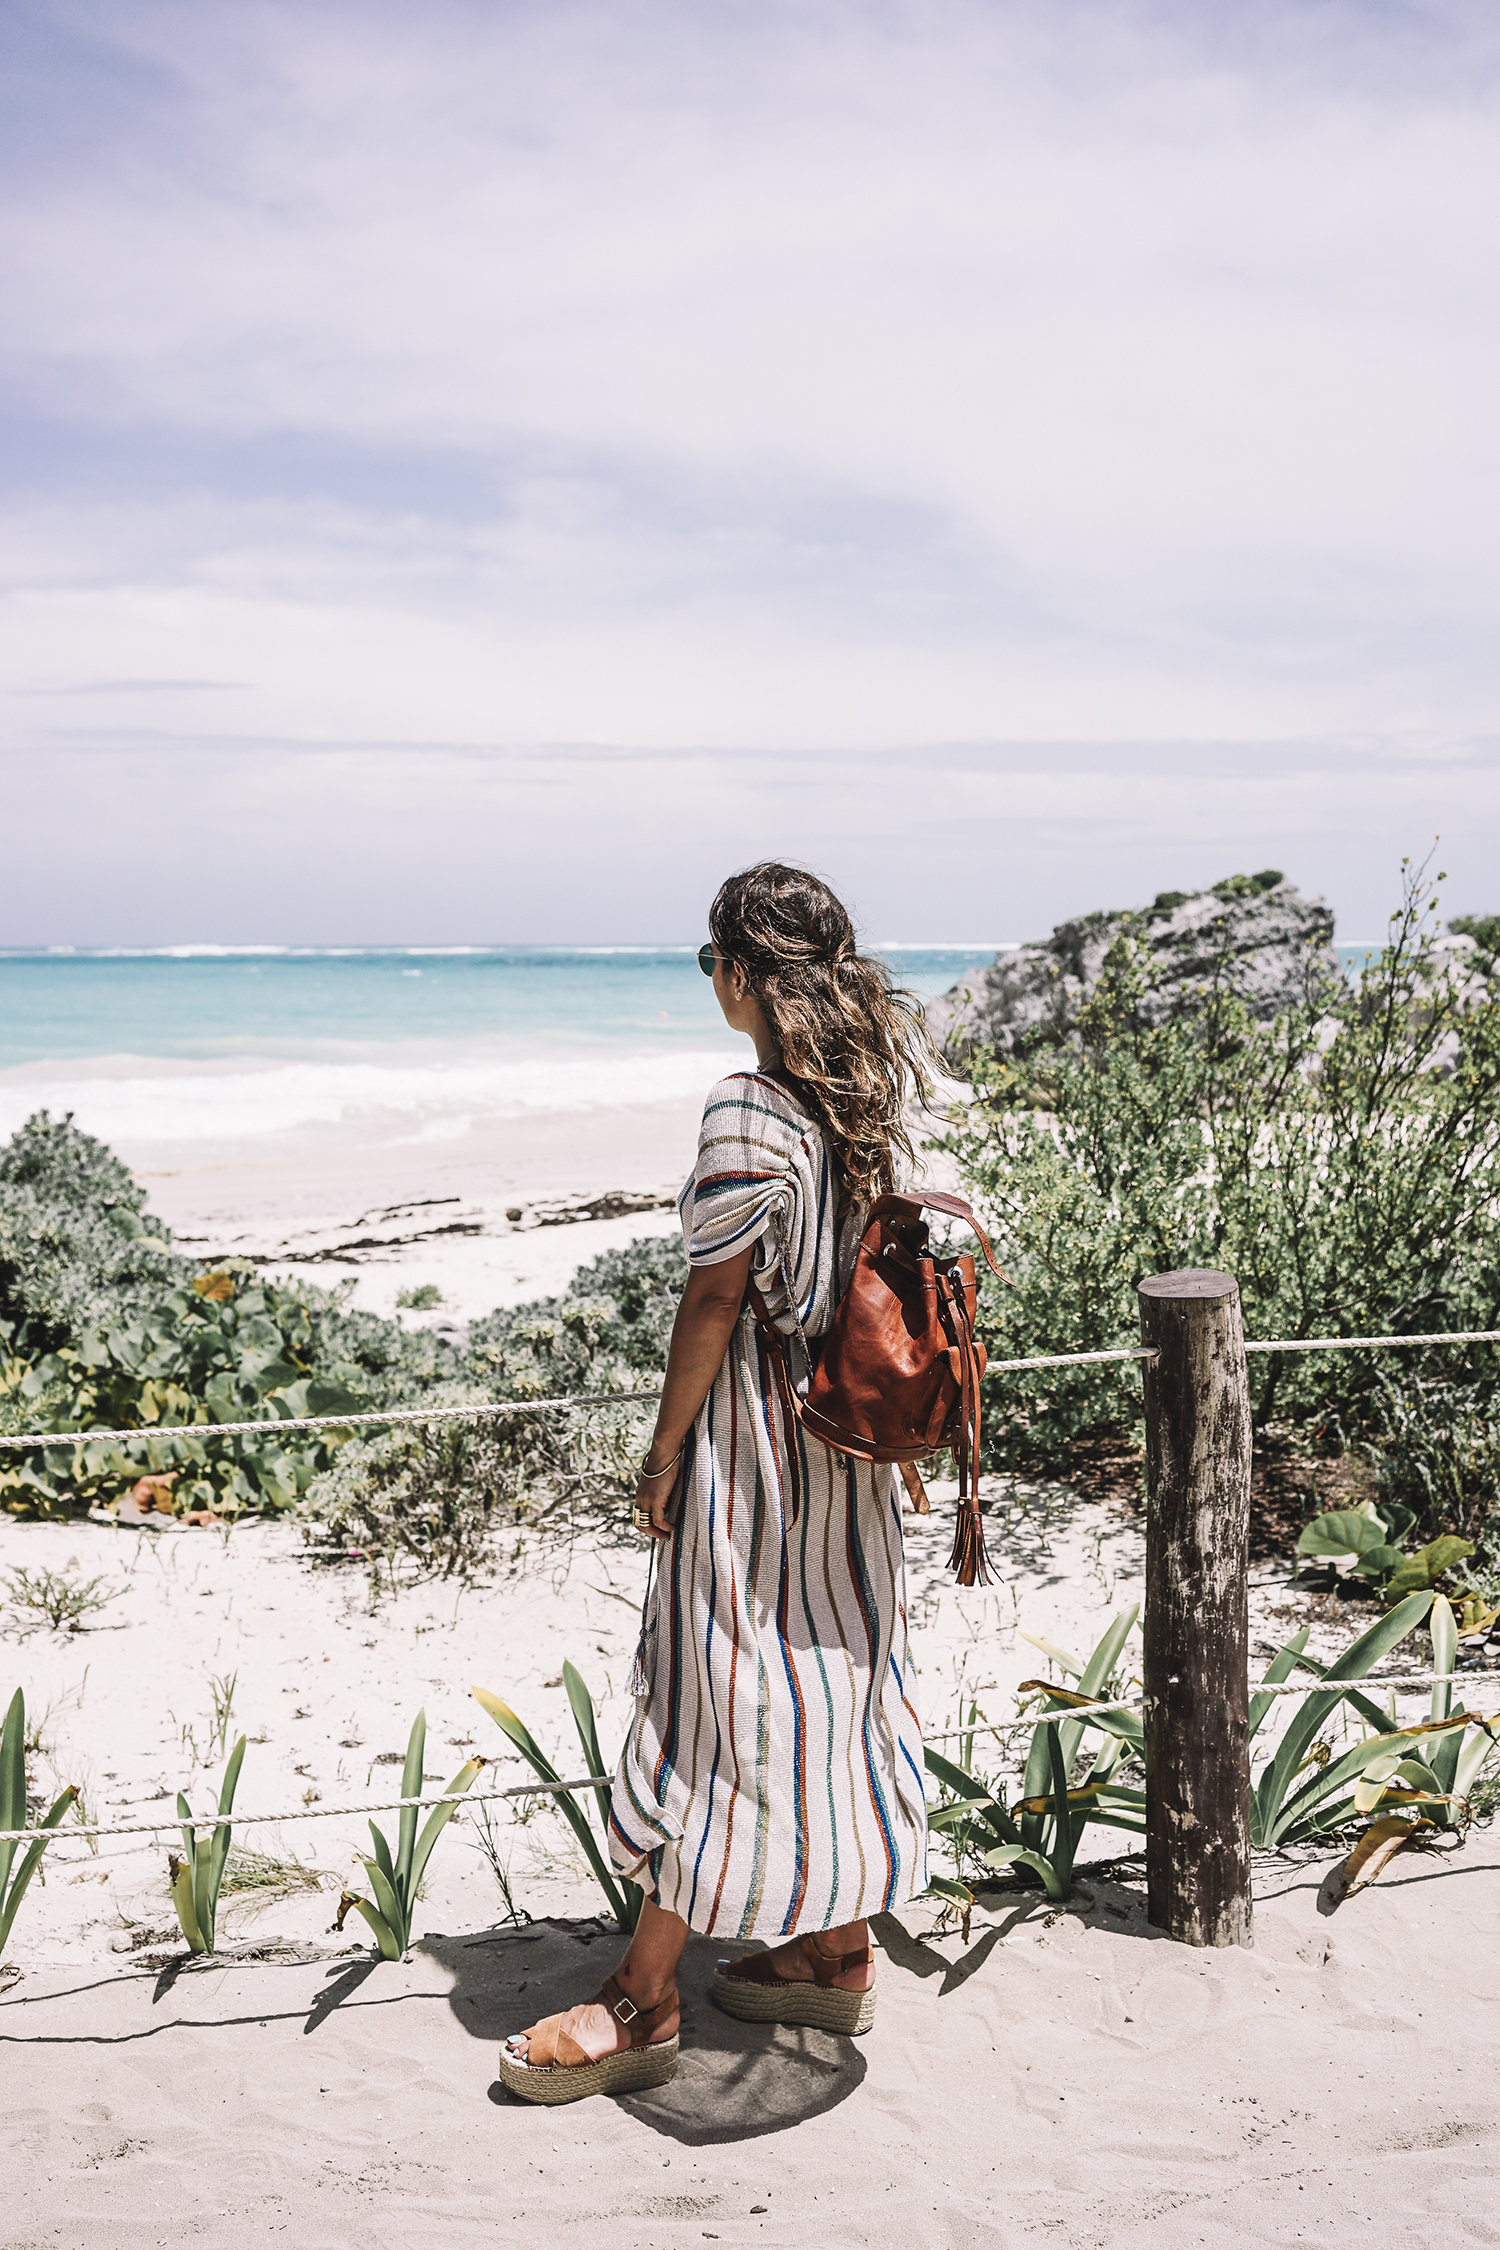 stripped_dress-leather_backpack-suede_espadrilles-mayan_ruins-hotel_esencia-sanara_tulum-beach-mexico-outfit-collage_vintage-49